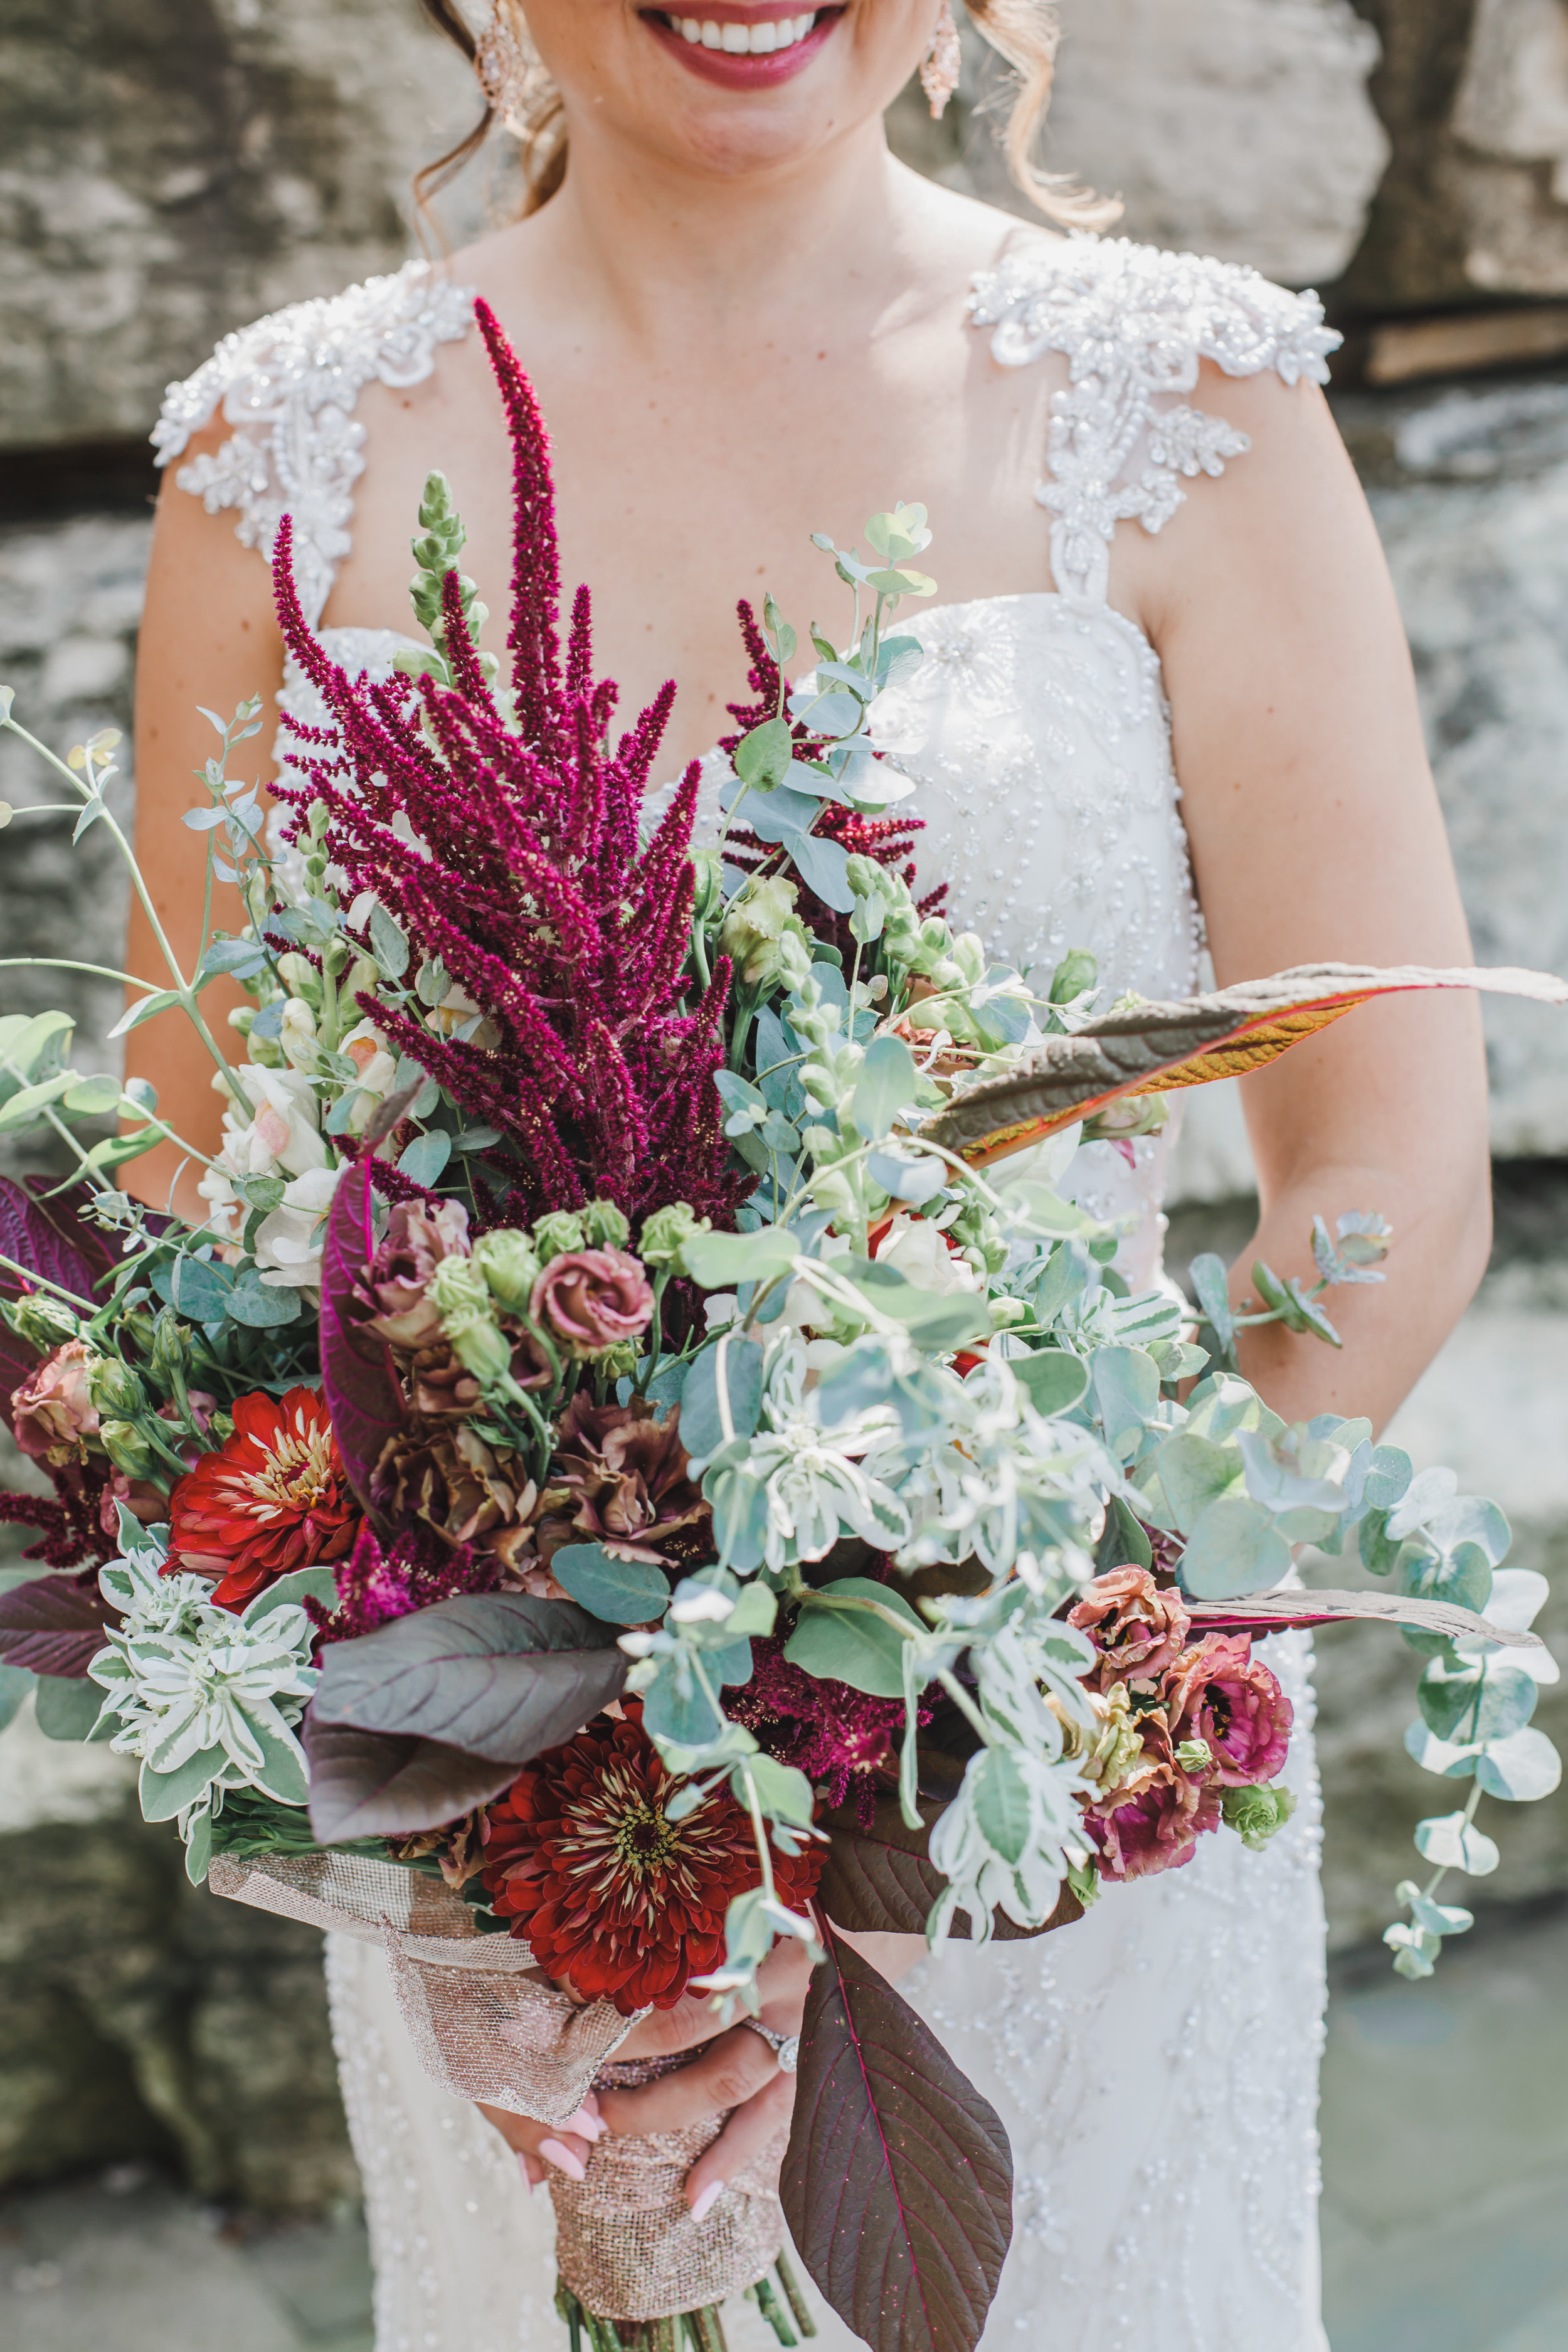 Red and Pink with Greenery Bridal Bouquet Chicago Wedding Grey Garden Creative